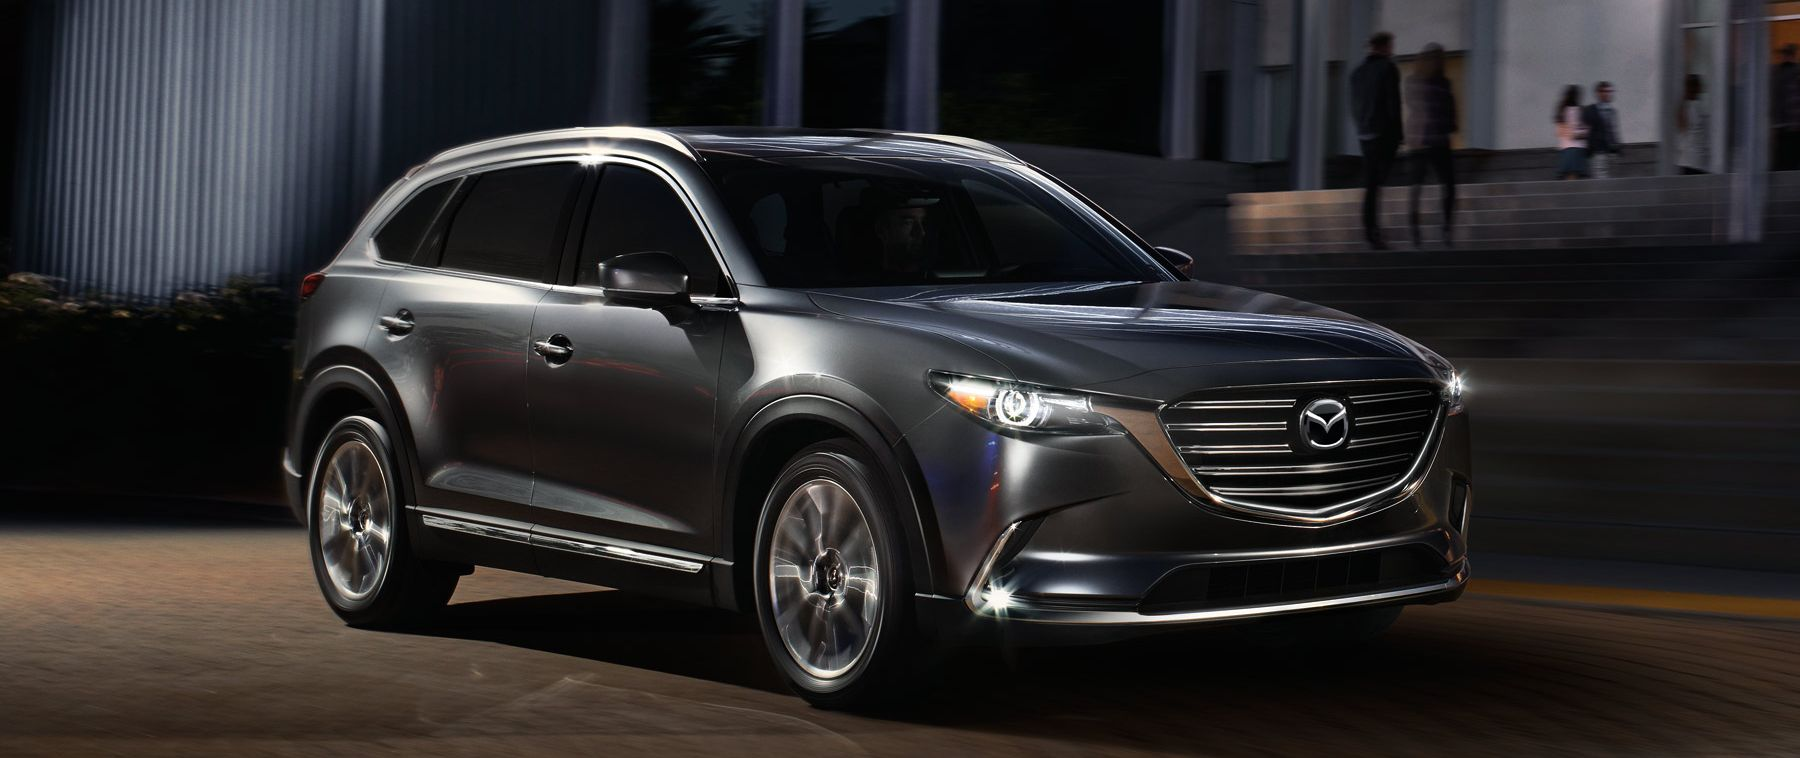 2017 mazda cx 9 for sale near destin fl mazda of fort walton beach. Black Bedroom Furniture Sets. Home Design Ideas